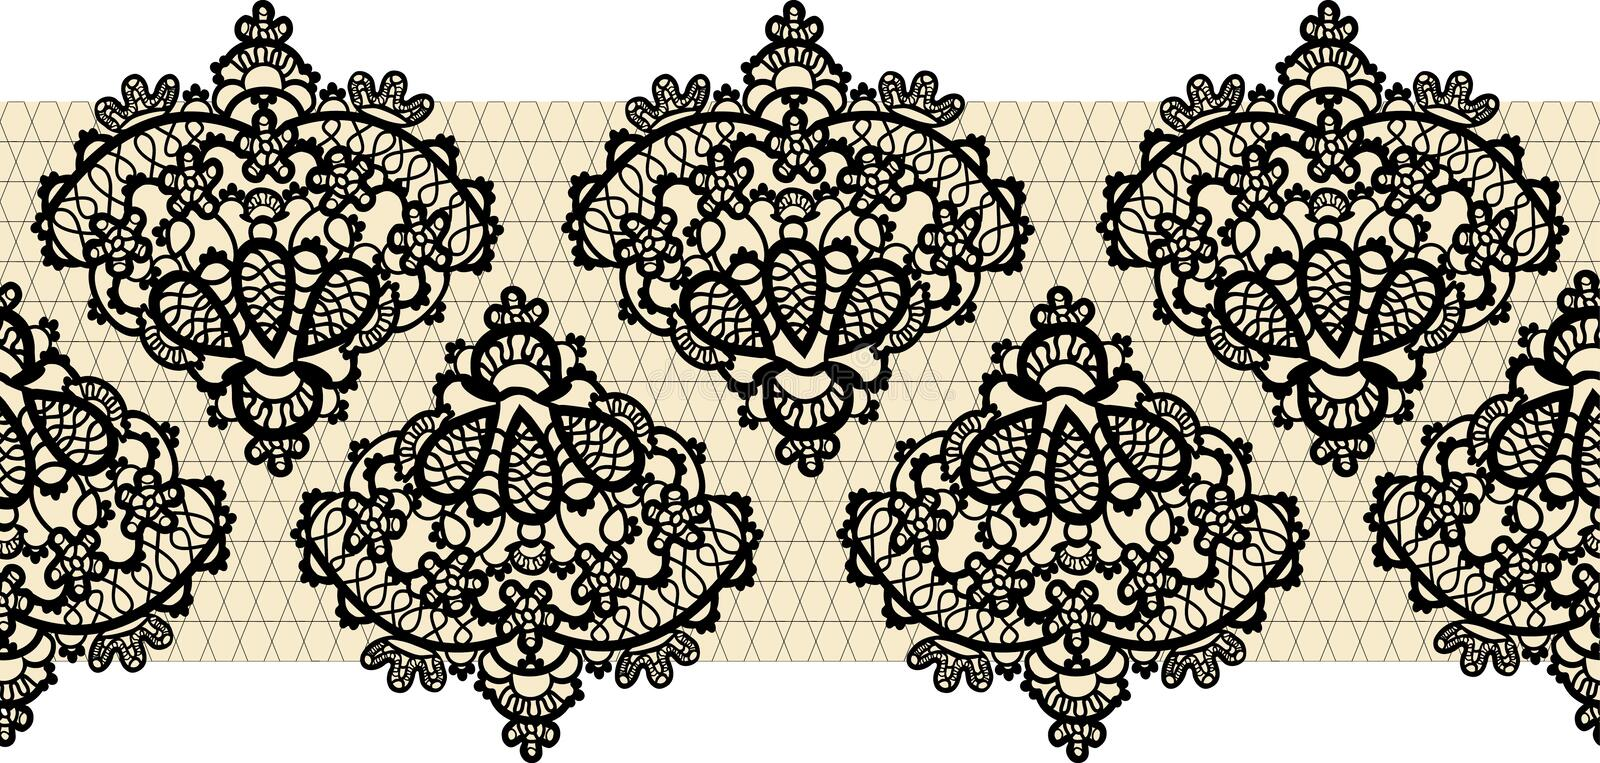 Seamless lace border vector illustration